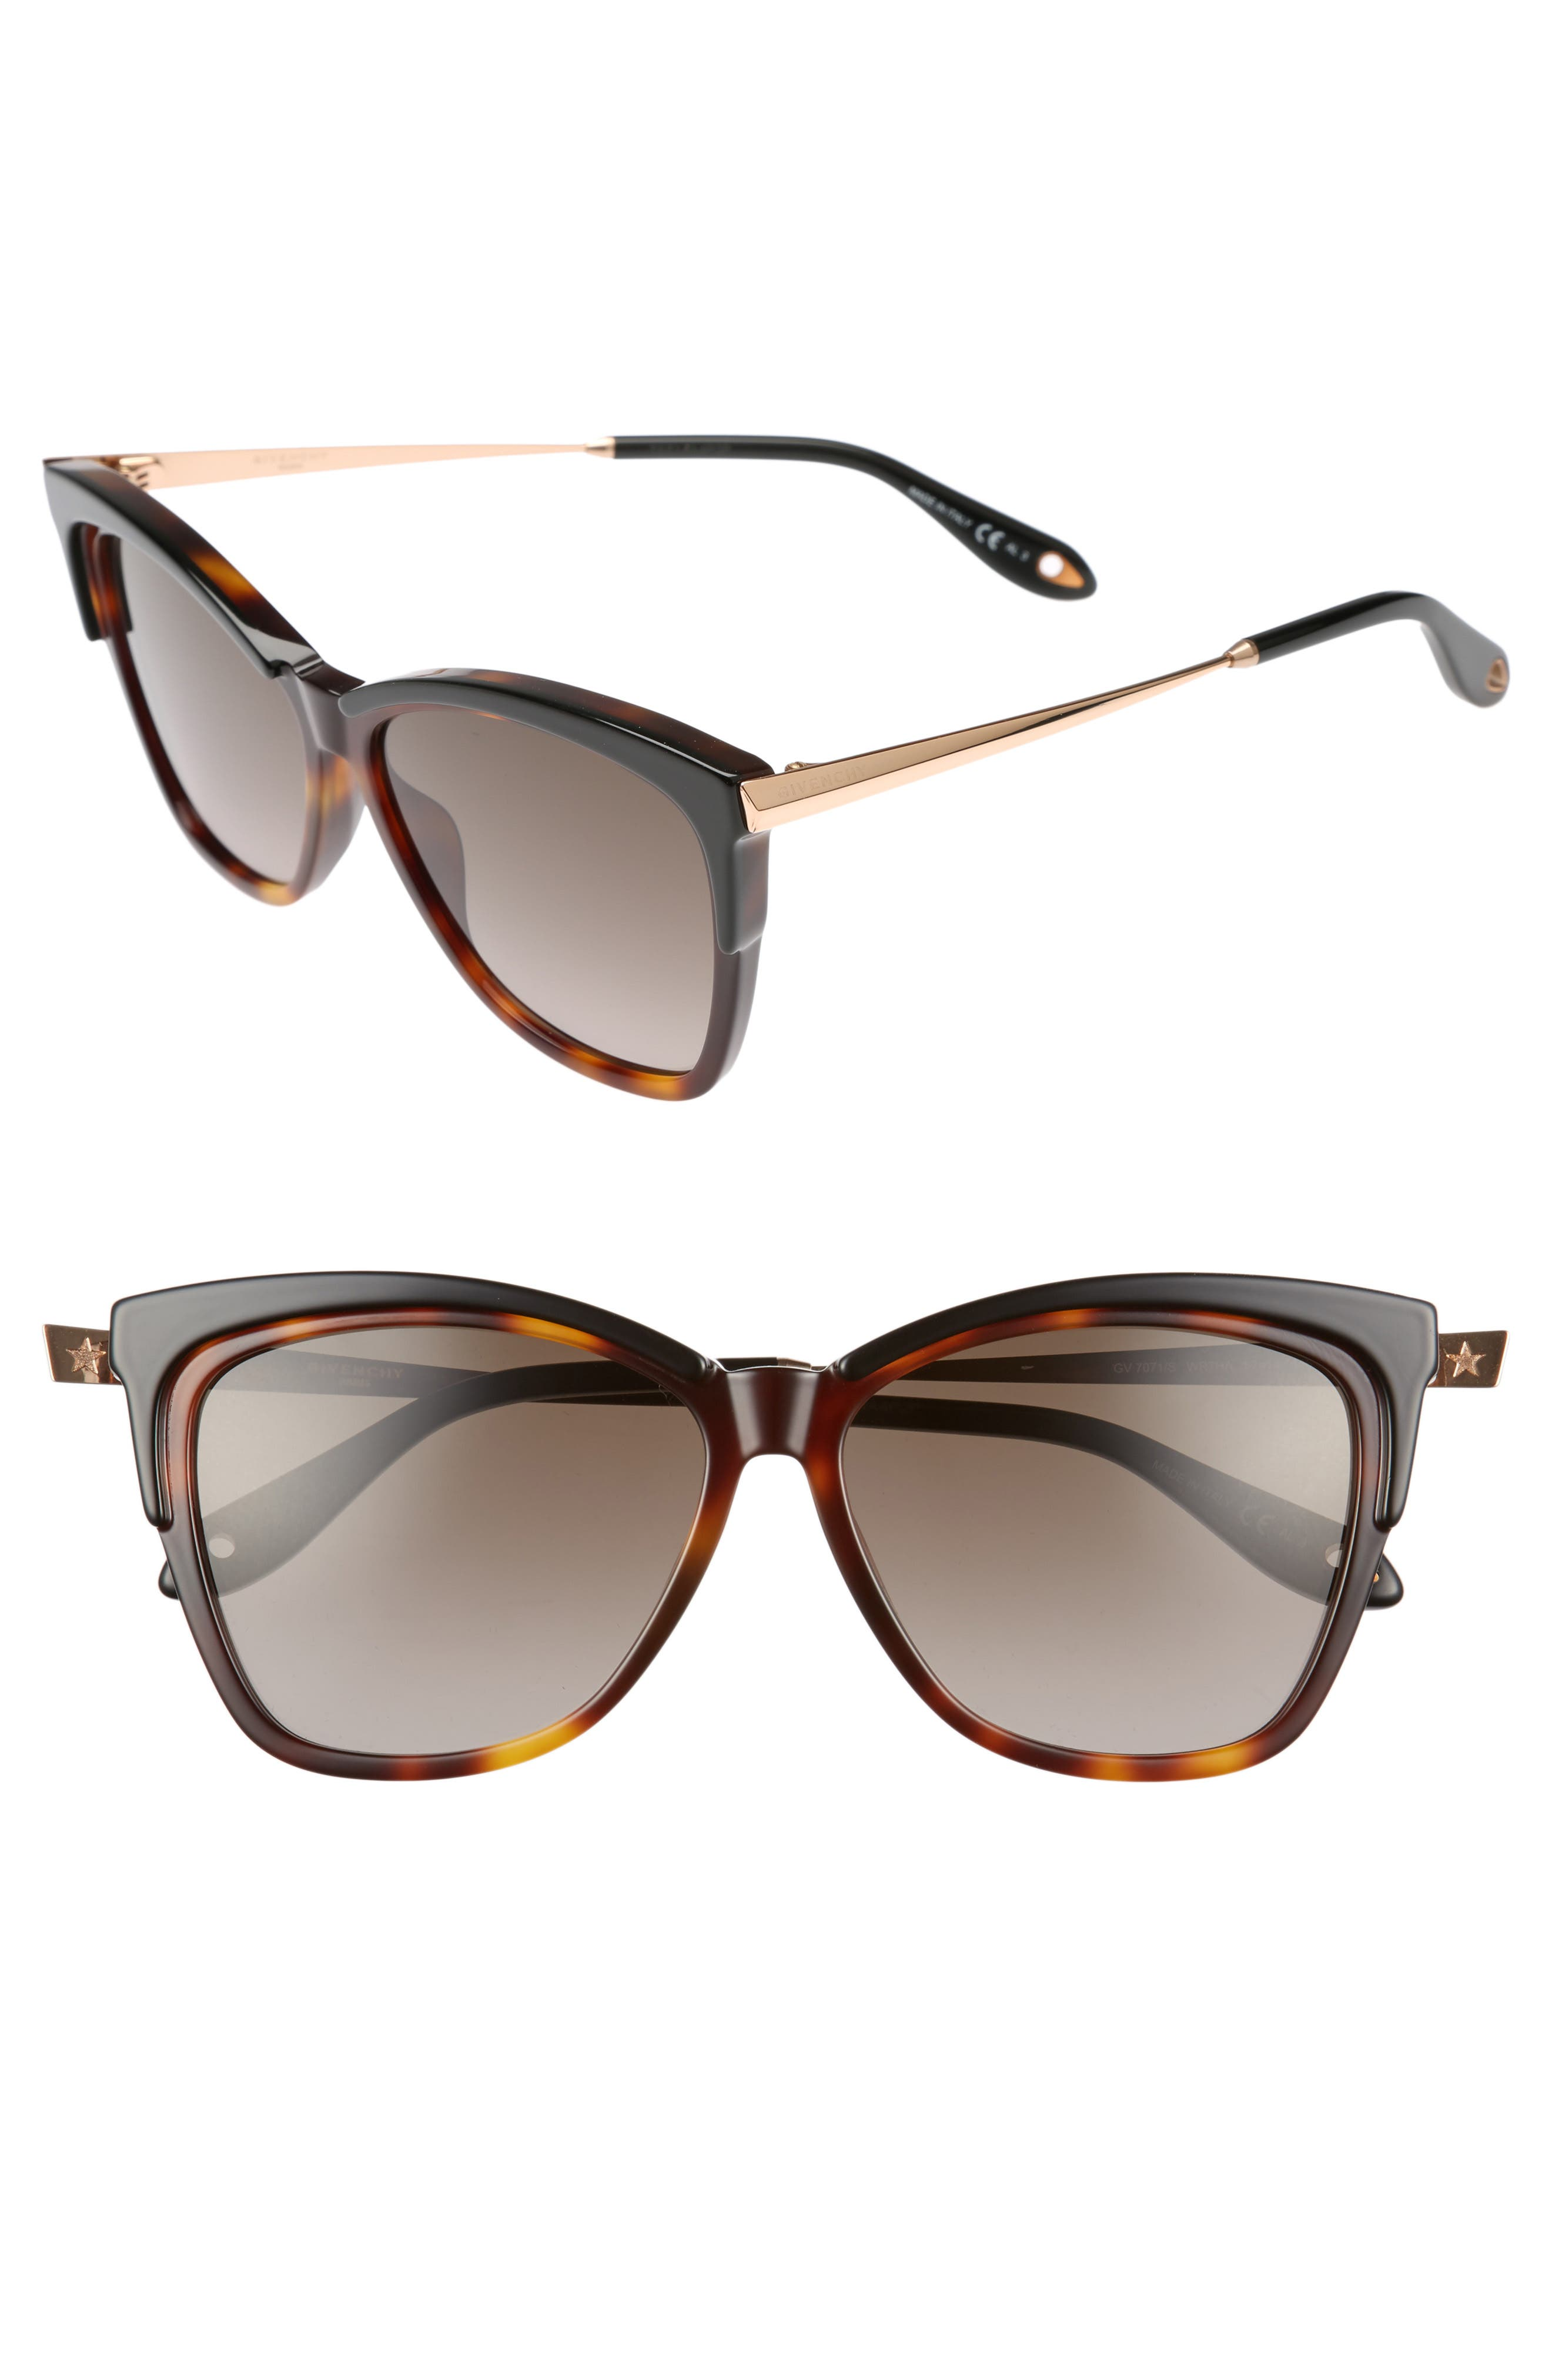 Givenchy 57Mm Cat Eye Sunglasses -